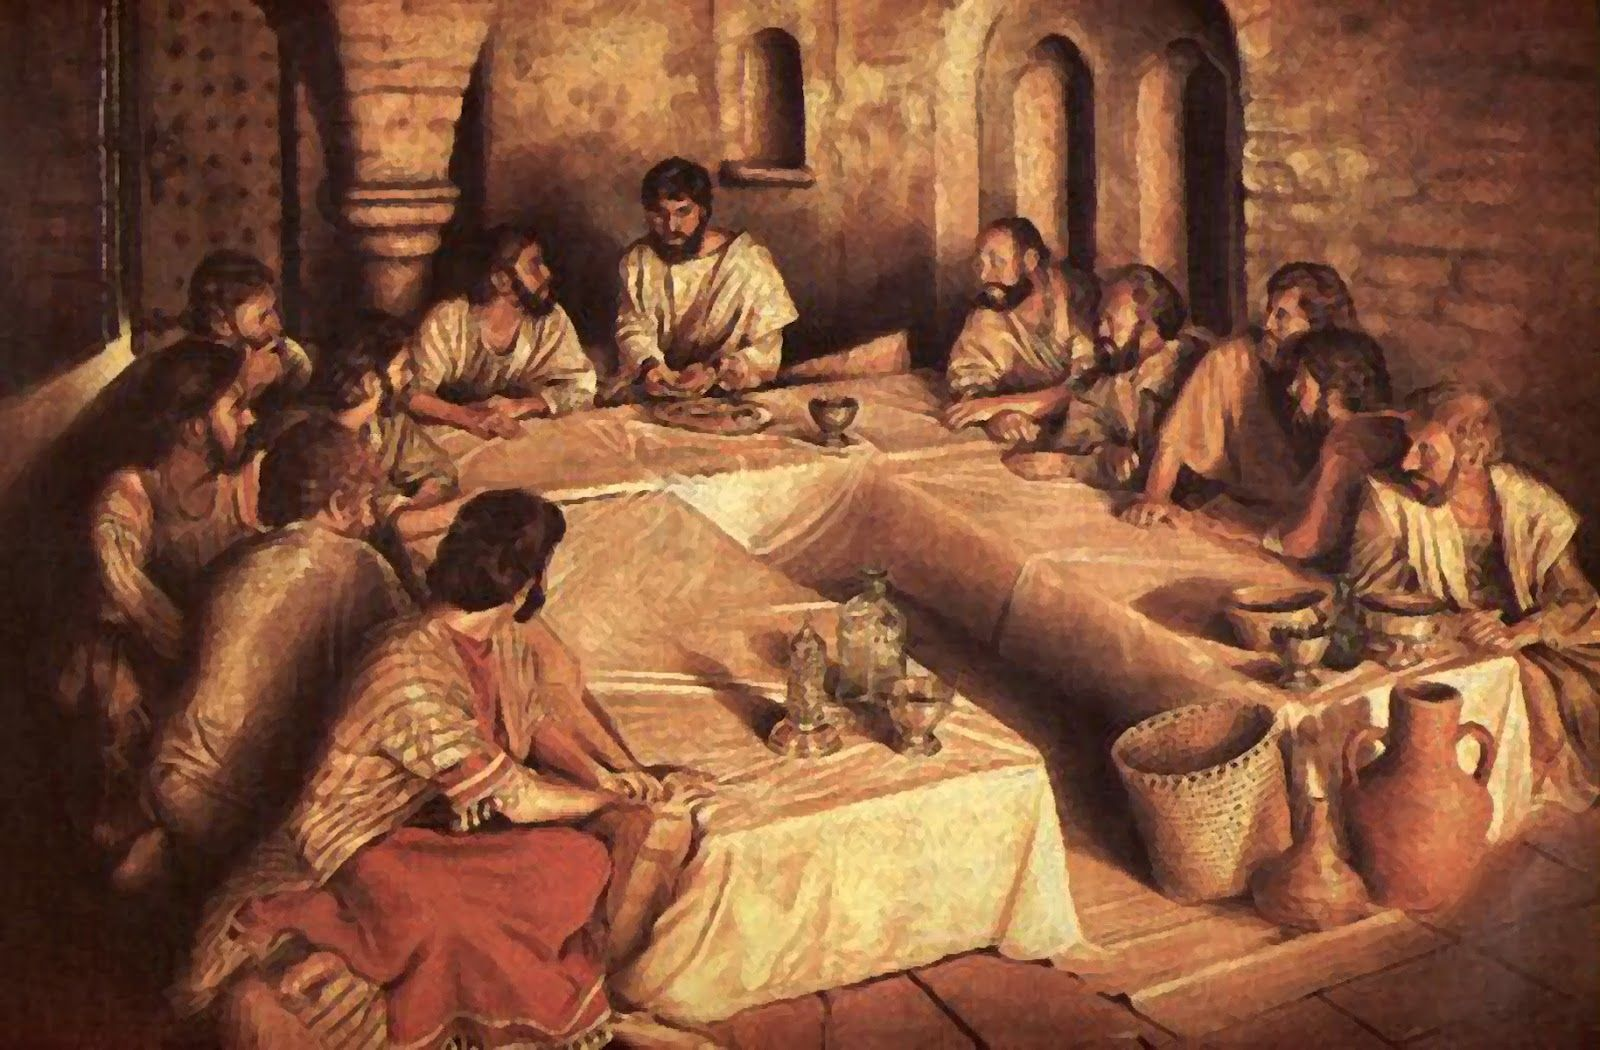 A Triclinium Passover 2012 (With images) | Last supper, Lords ...